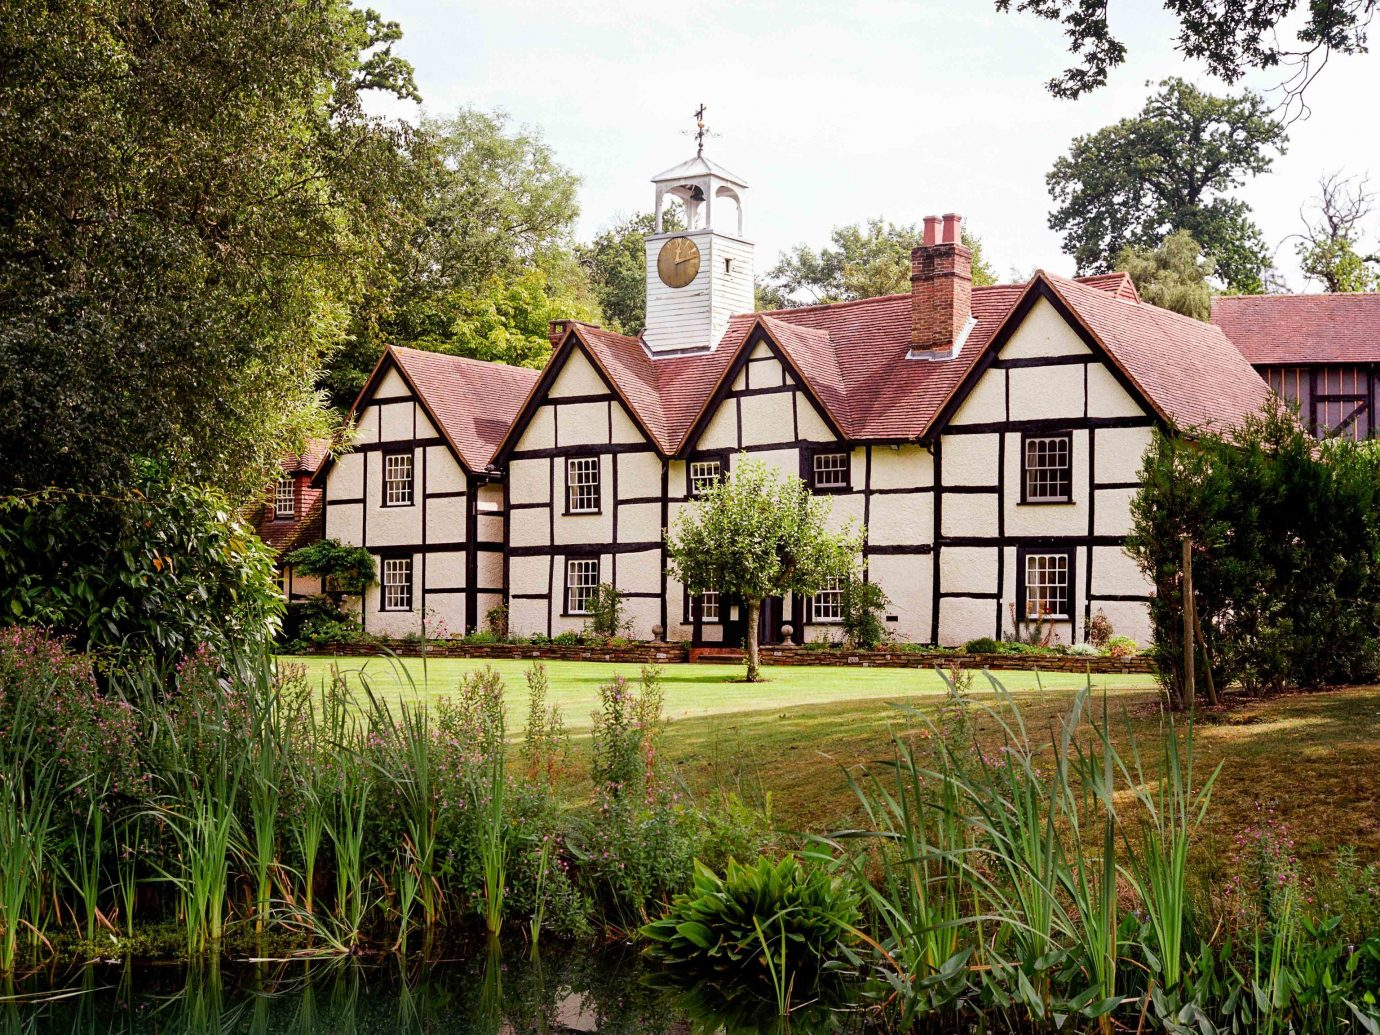 europe Trip Ideas waterway property reflection estate cottage house home water tree farmhouse real estate mansion manor house national trust for places of historic interest or natural beauty grass Village Canal watercourse bank landscape historic house plant pond facade Villa